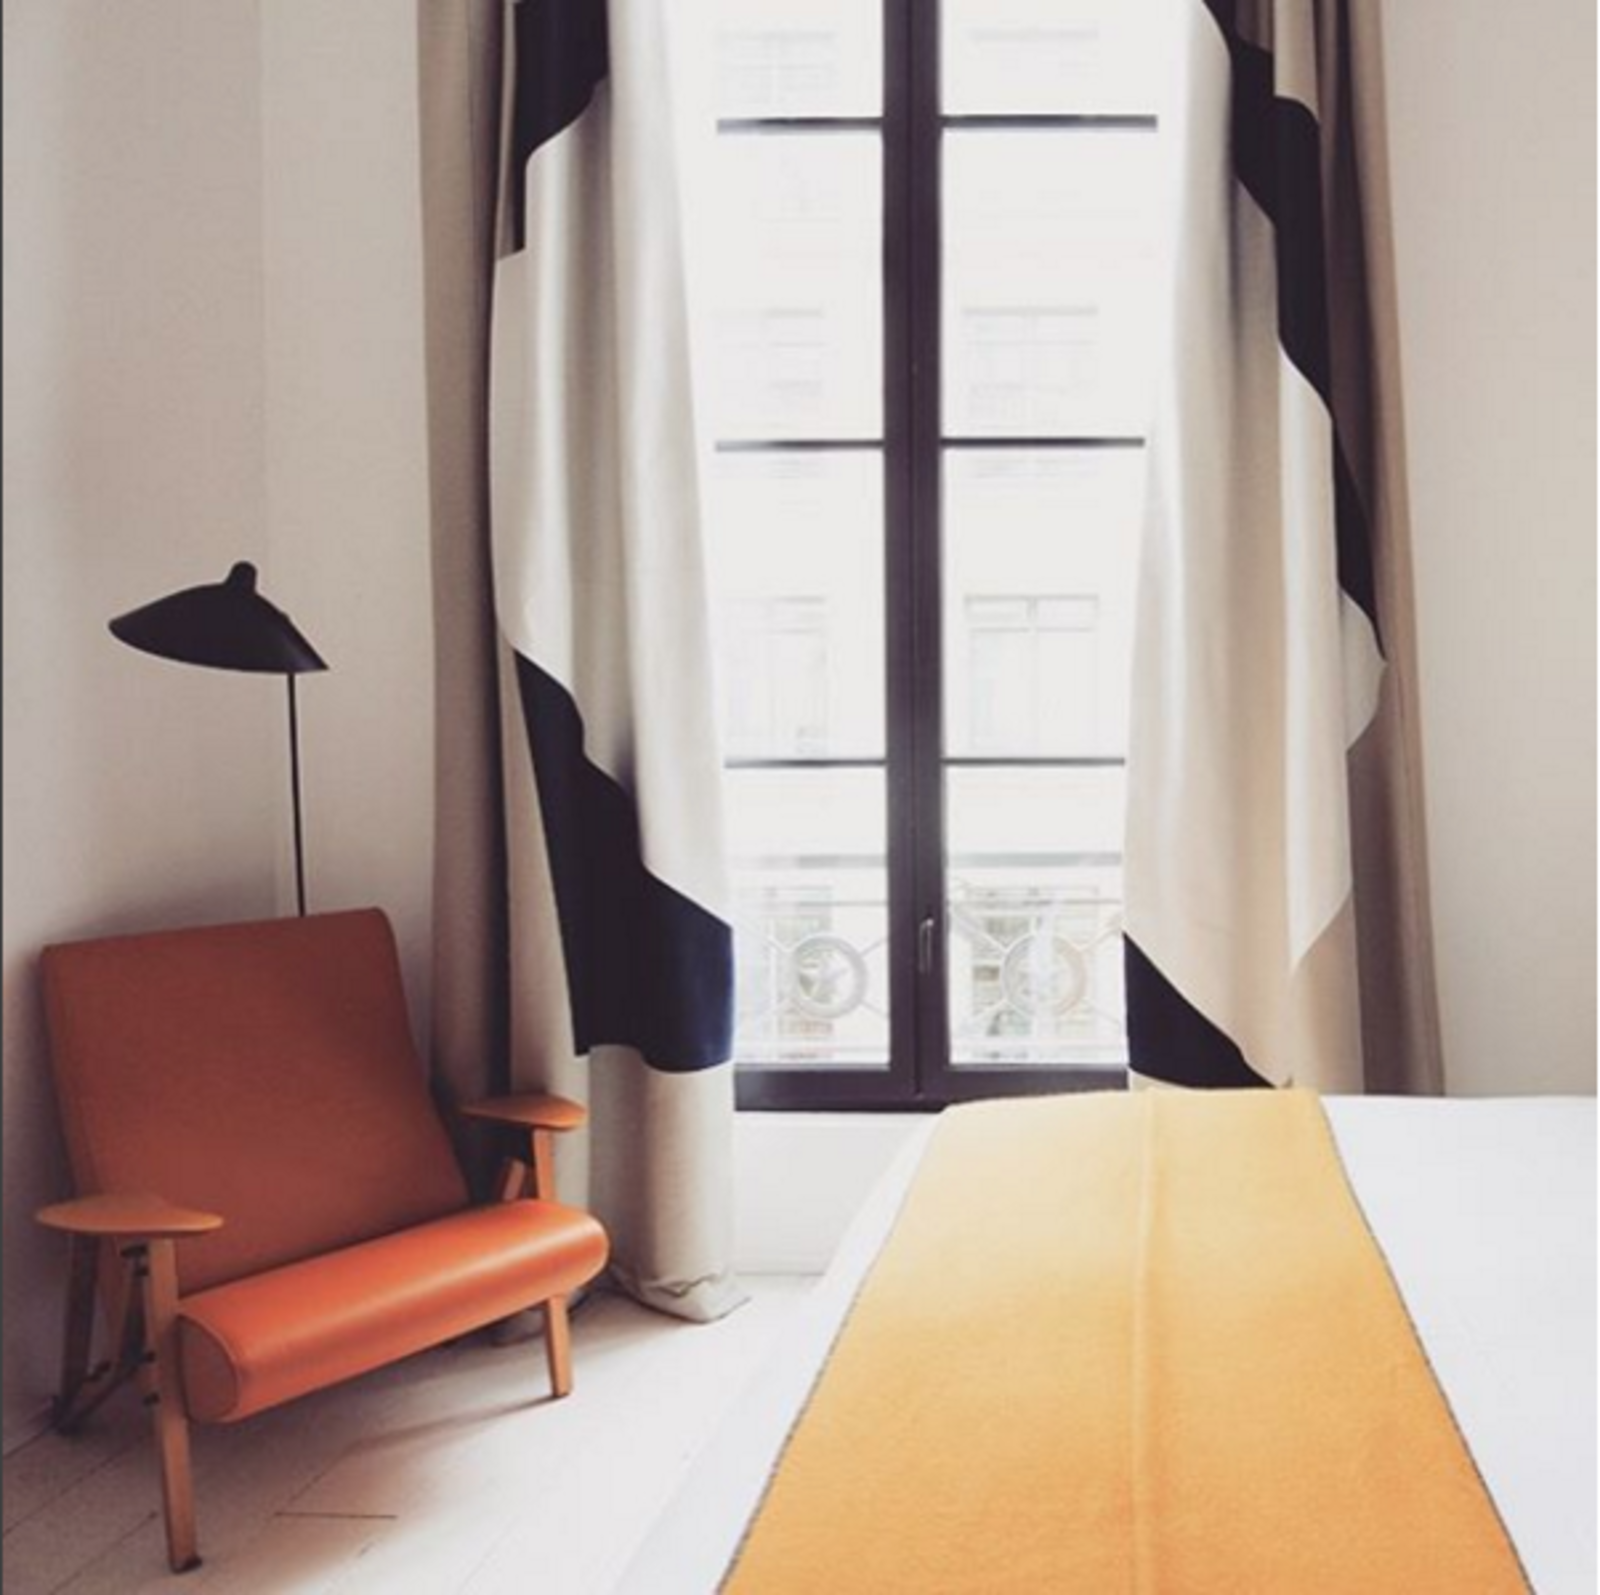 The view from the Hotel du Ministere in Paris.  Places to go by Lara Deam from Instagram Account We Love: Finding the World's Best-Designed Hotels, Cafes, and More